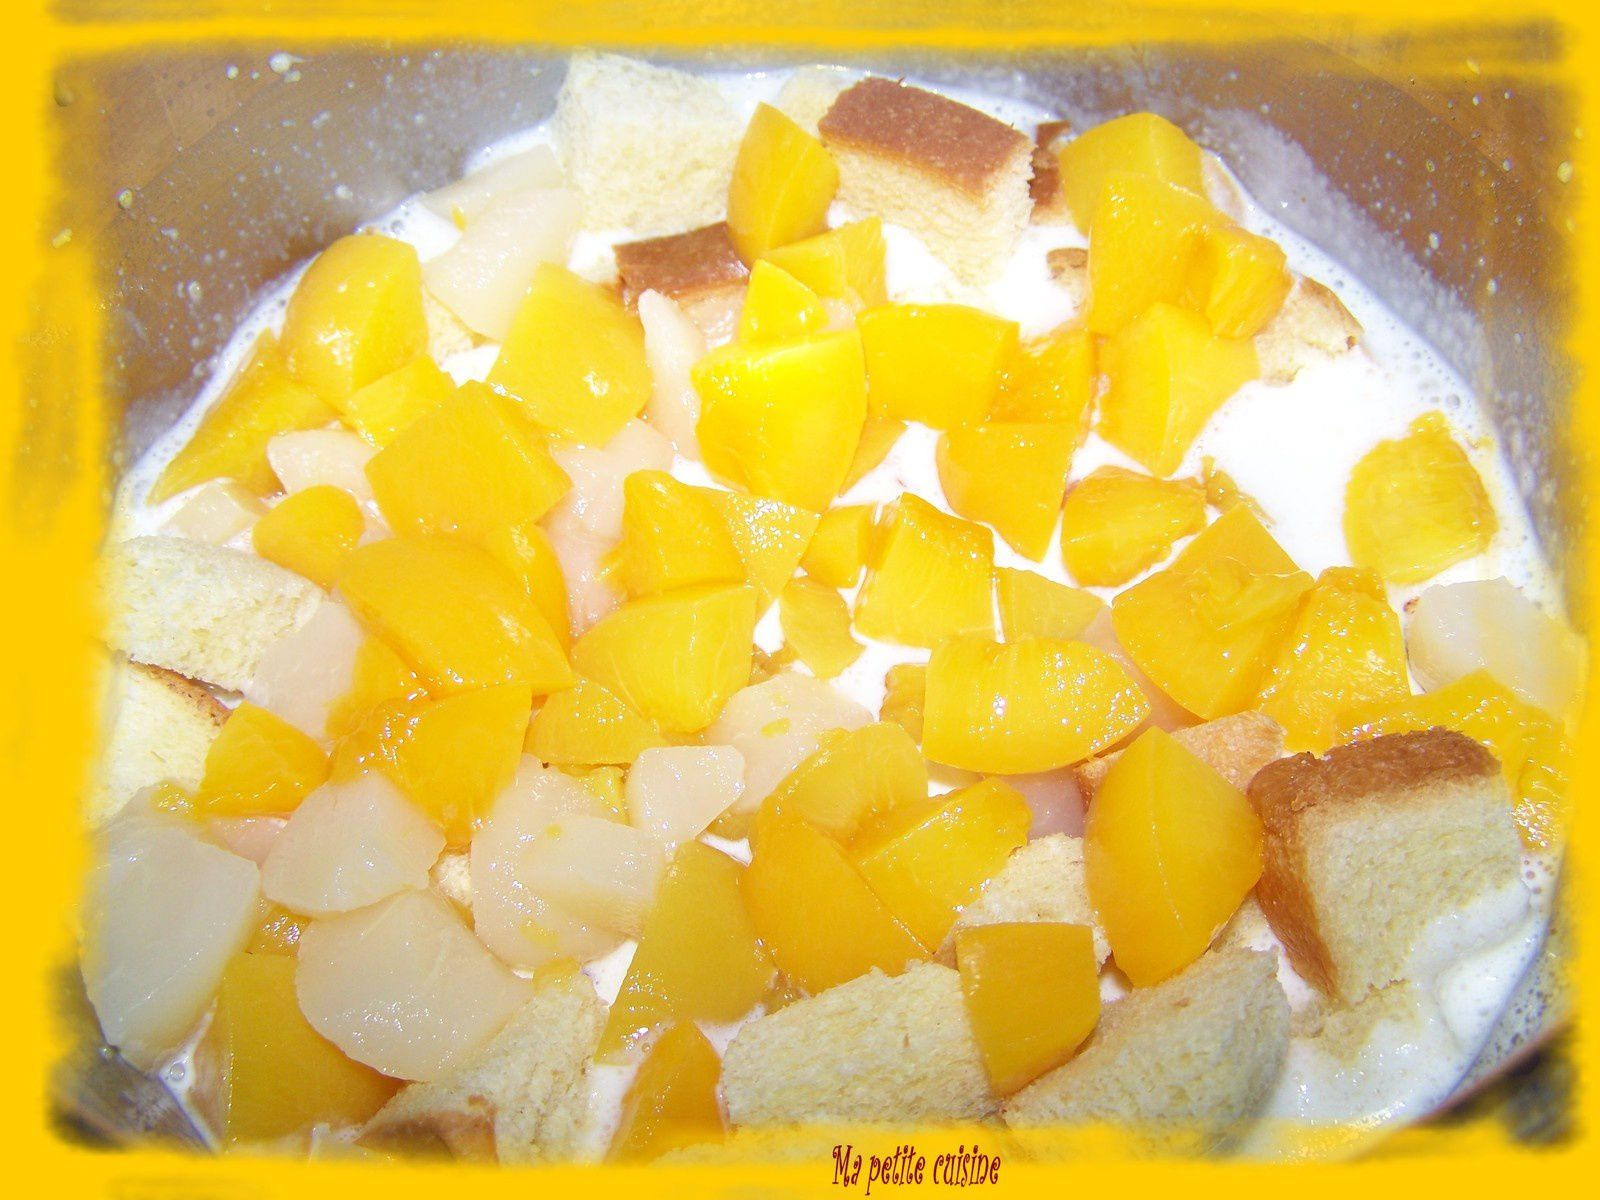 Pudding aux fruits au sirop